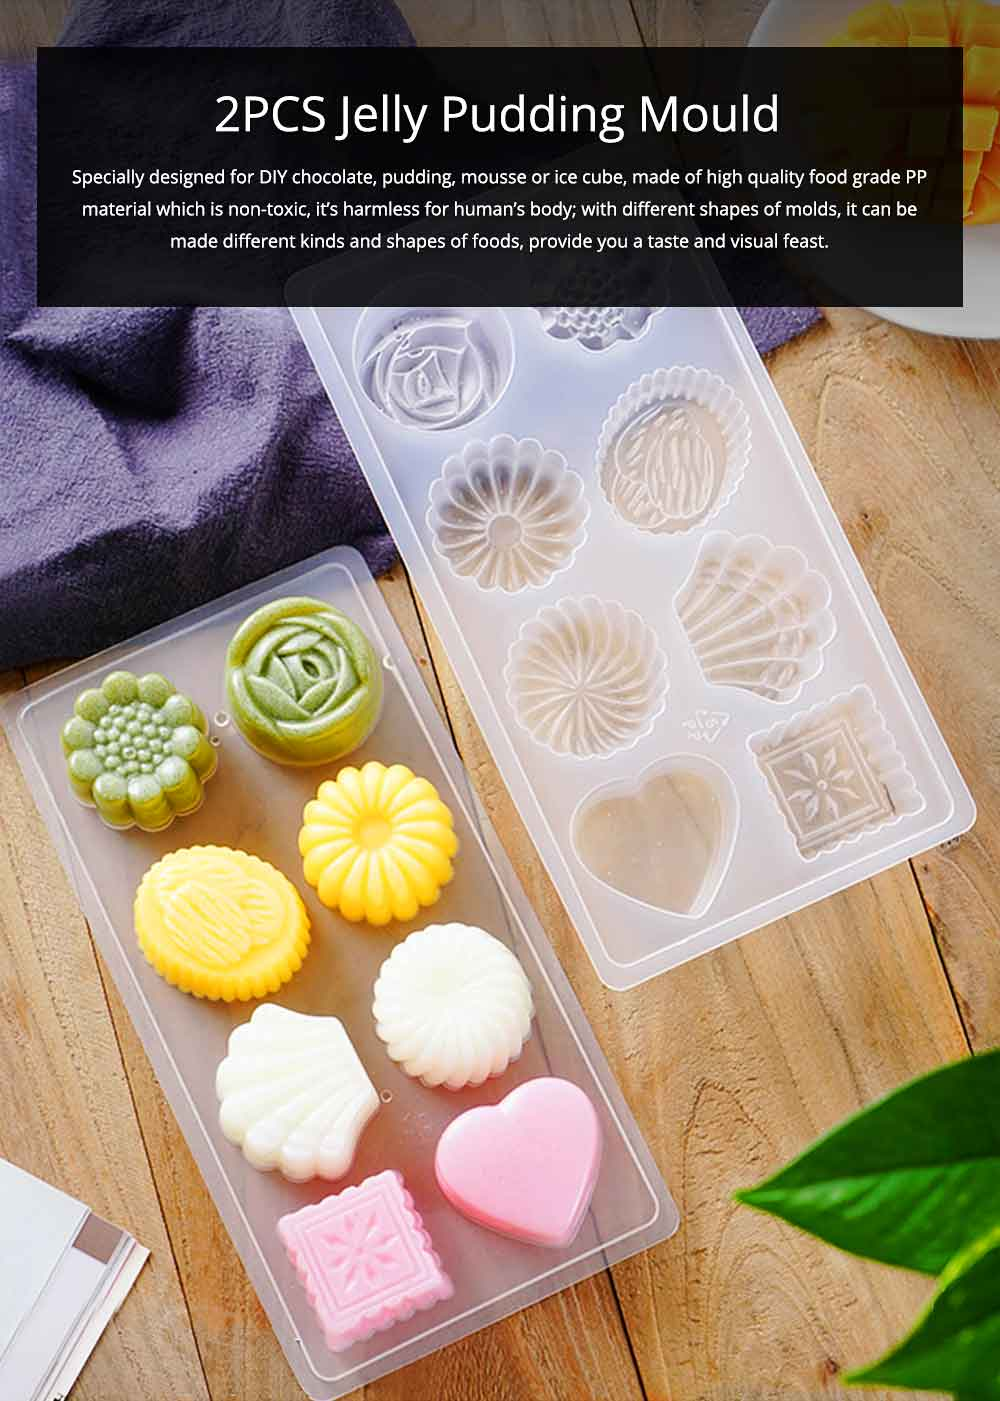 2PCS Jelly Pudding Mould, DIY Baking Chocolate Pudding Ice Cube Making Mold, 8 Cube 0